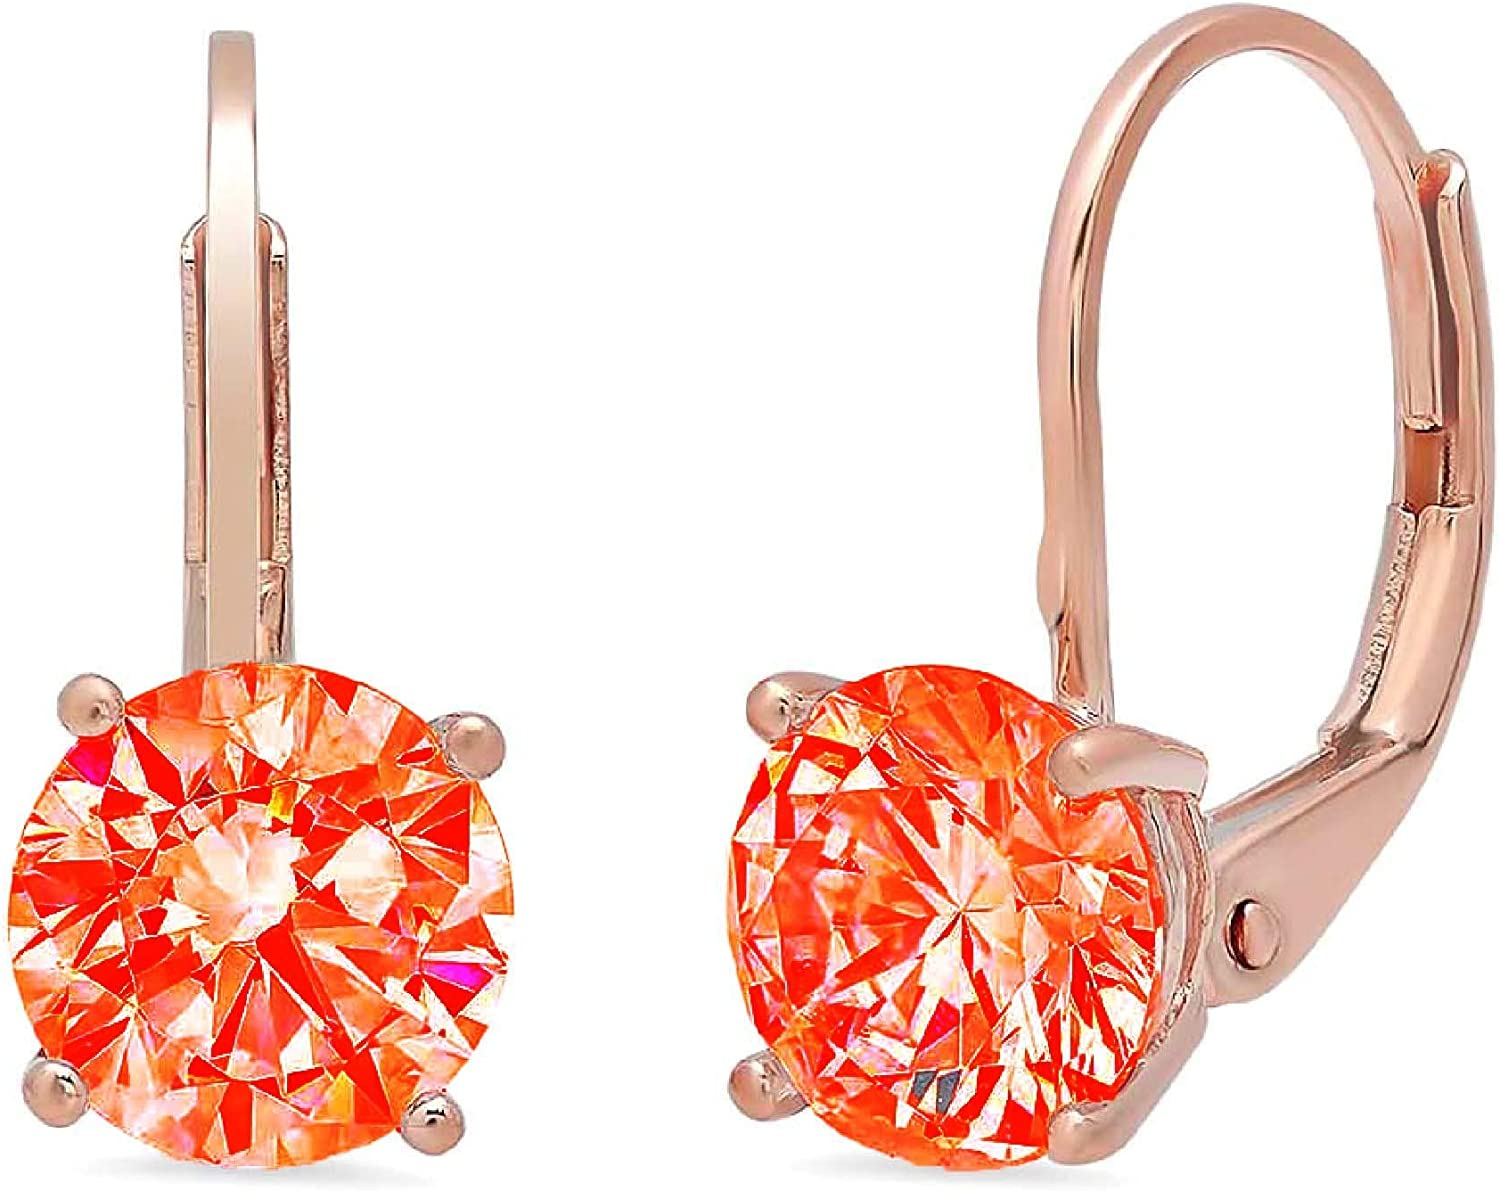 Clara Pucci 1.1 ct Brilliant Round S Cut VVS1 New Shipping Free Red Fine Solitaire Ranking TOP19